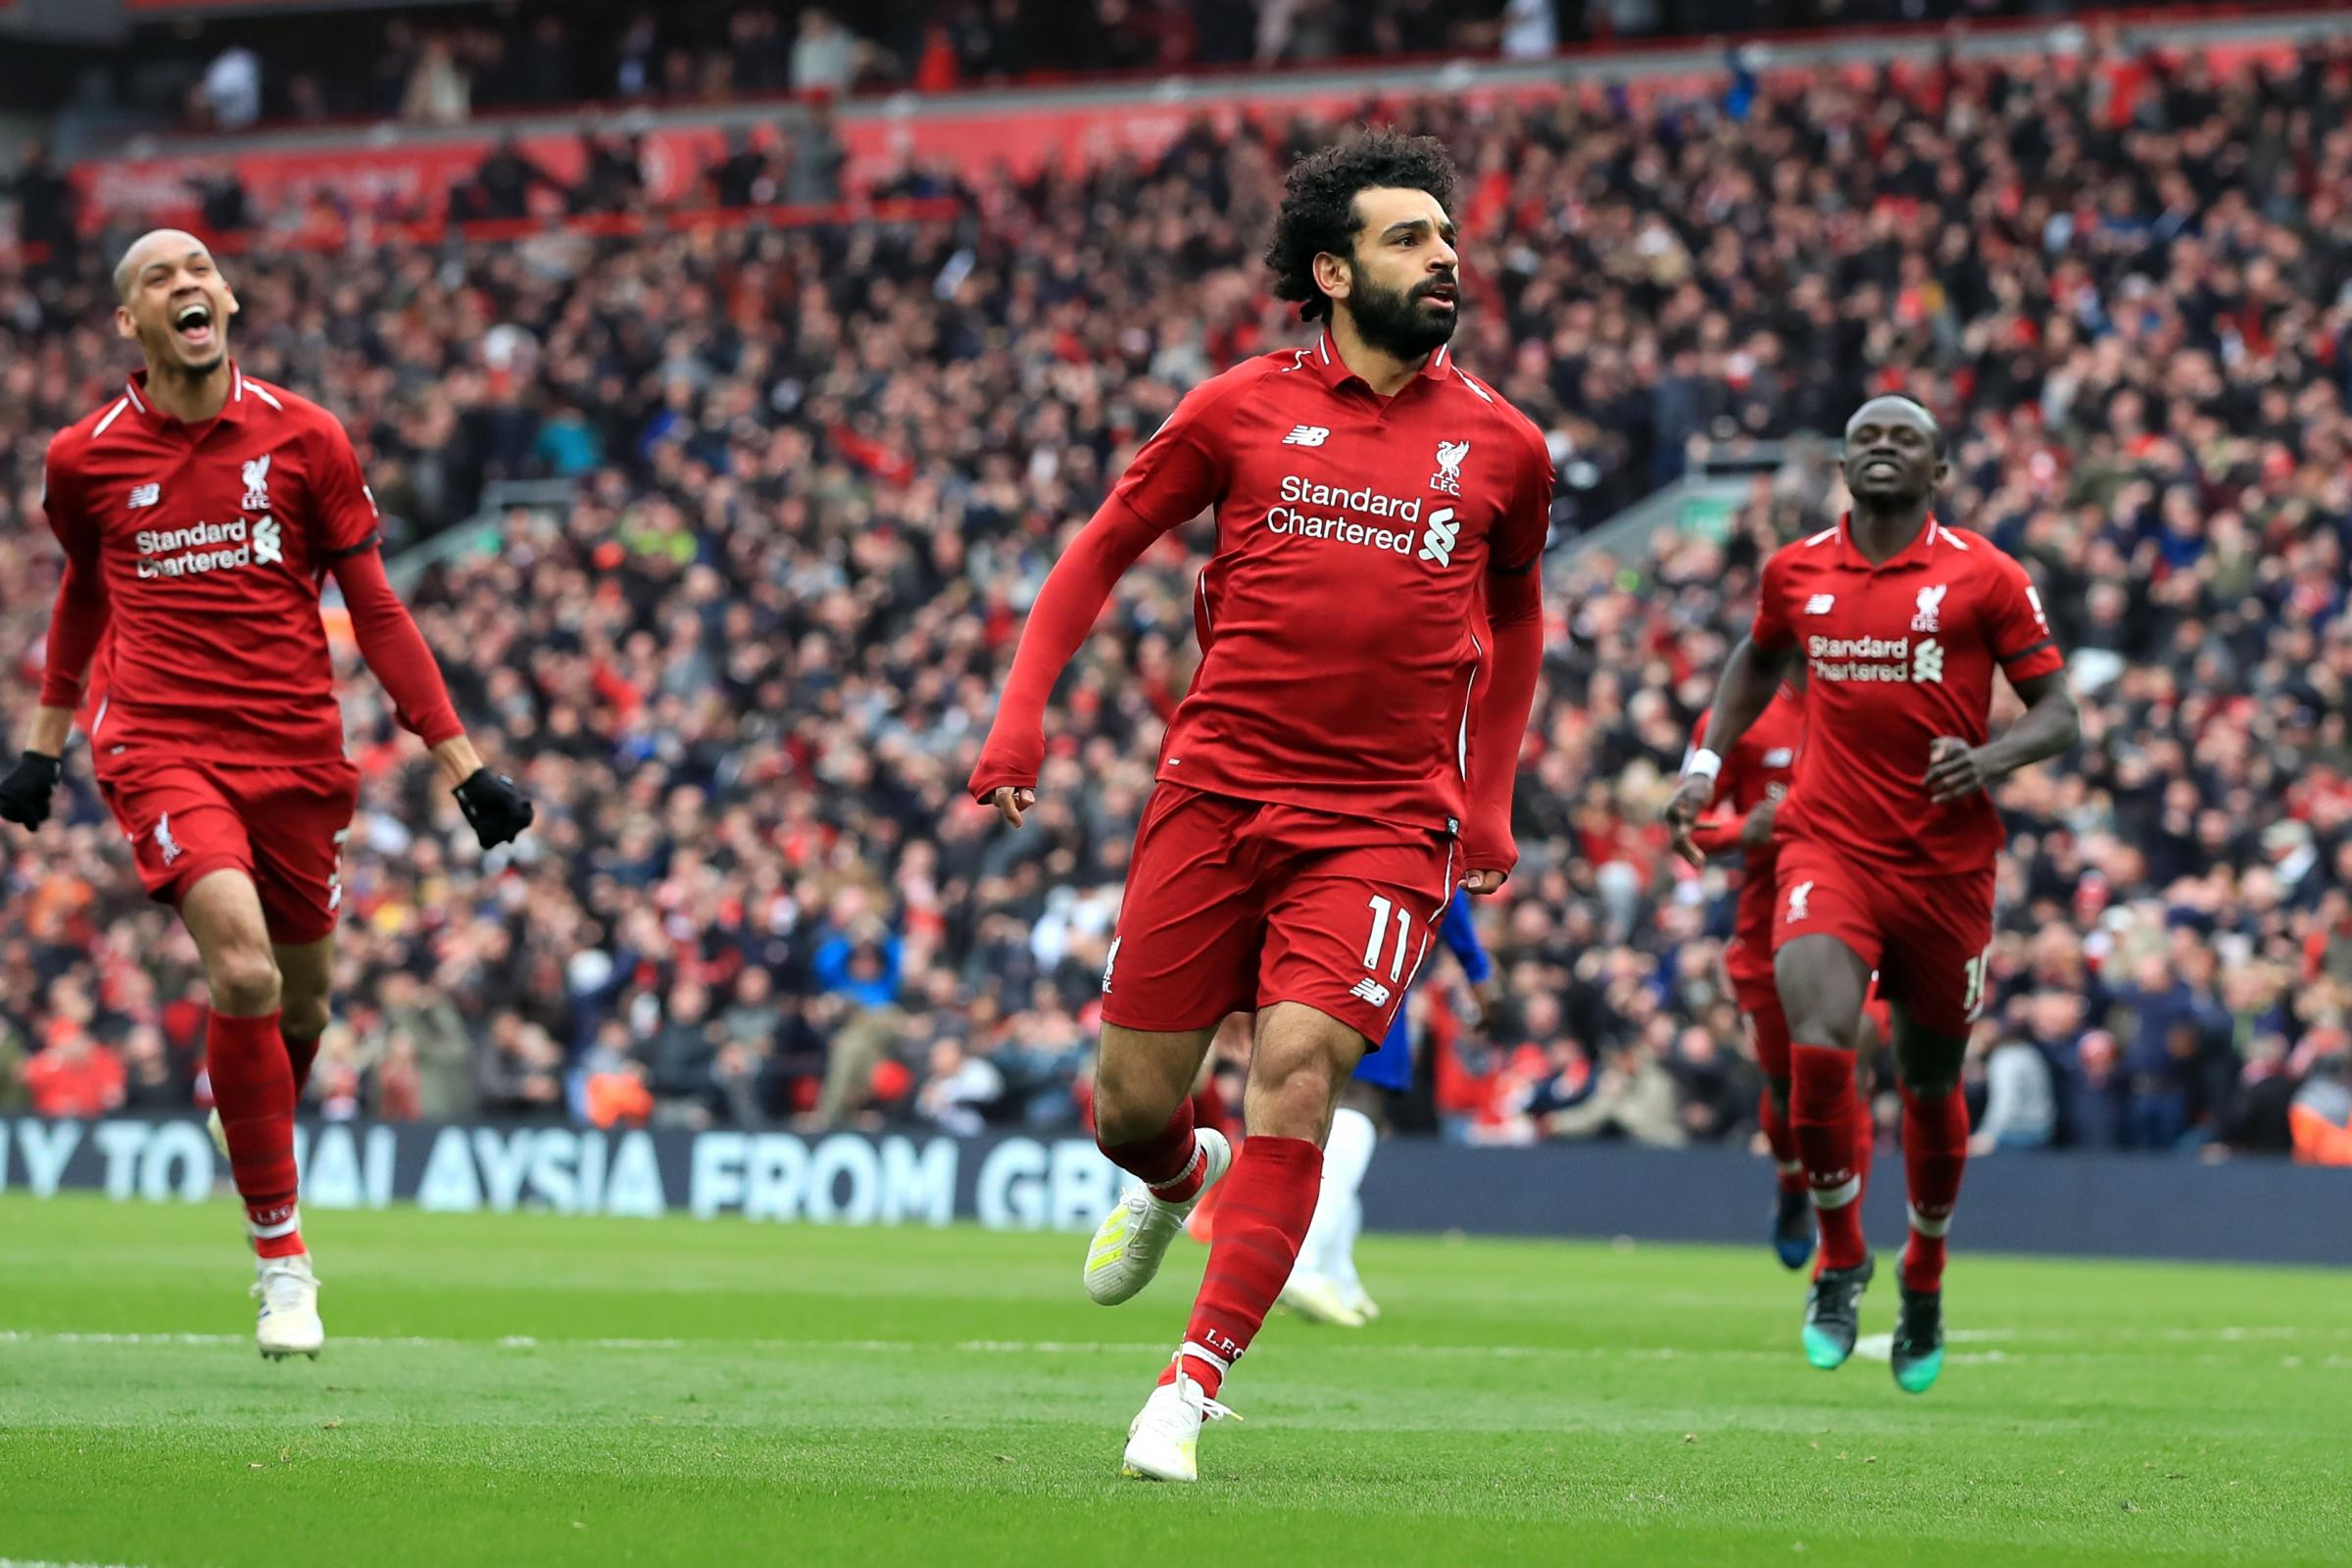 Mohamed Salah, centre, starred in Liverpool's win over Chelsea (Peter Byrne/PA)